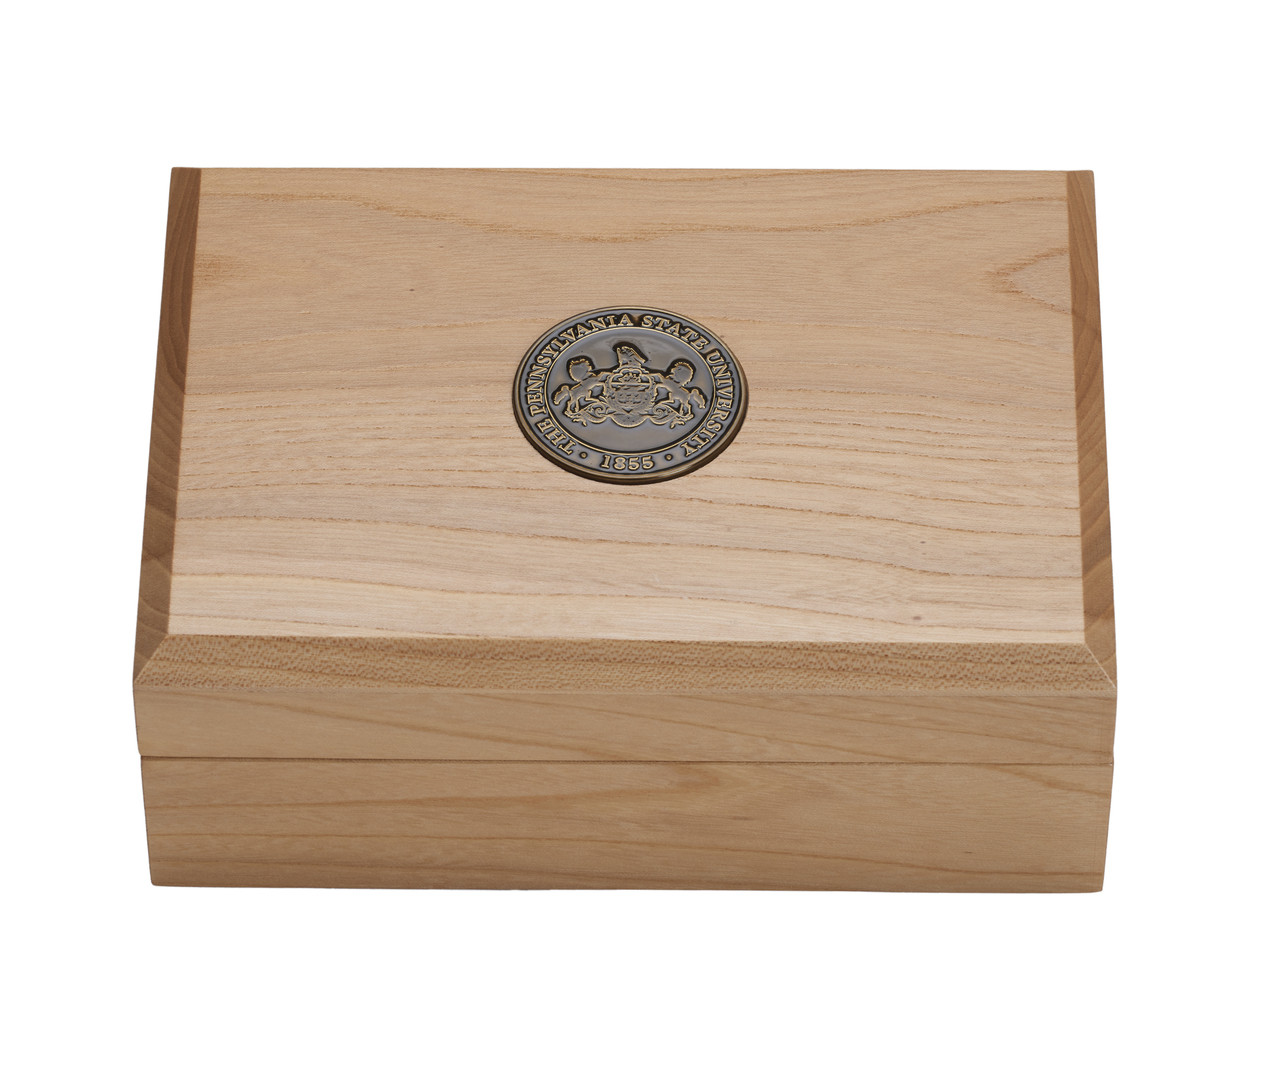 Penn State Elms Collection Keepsake Box With Medallion The Penn